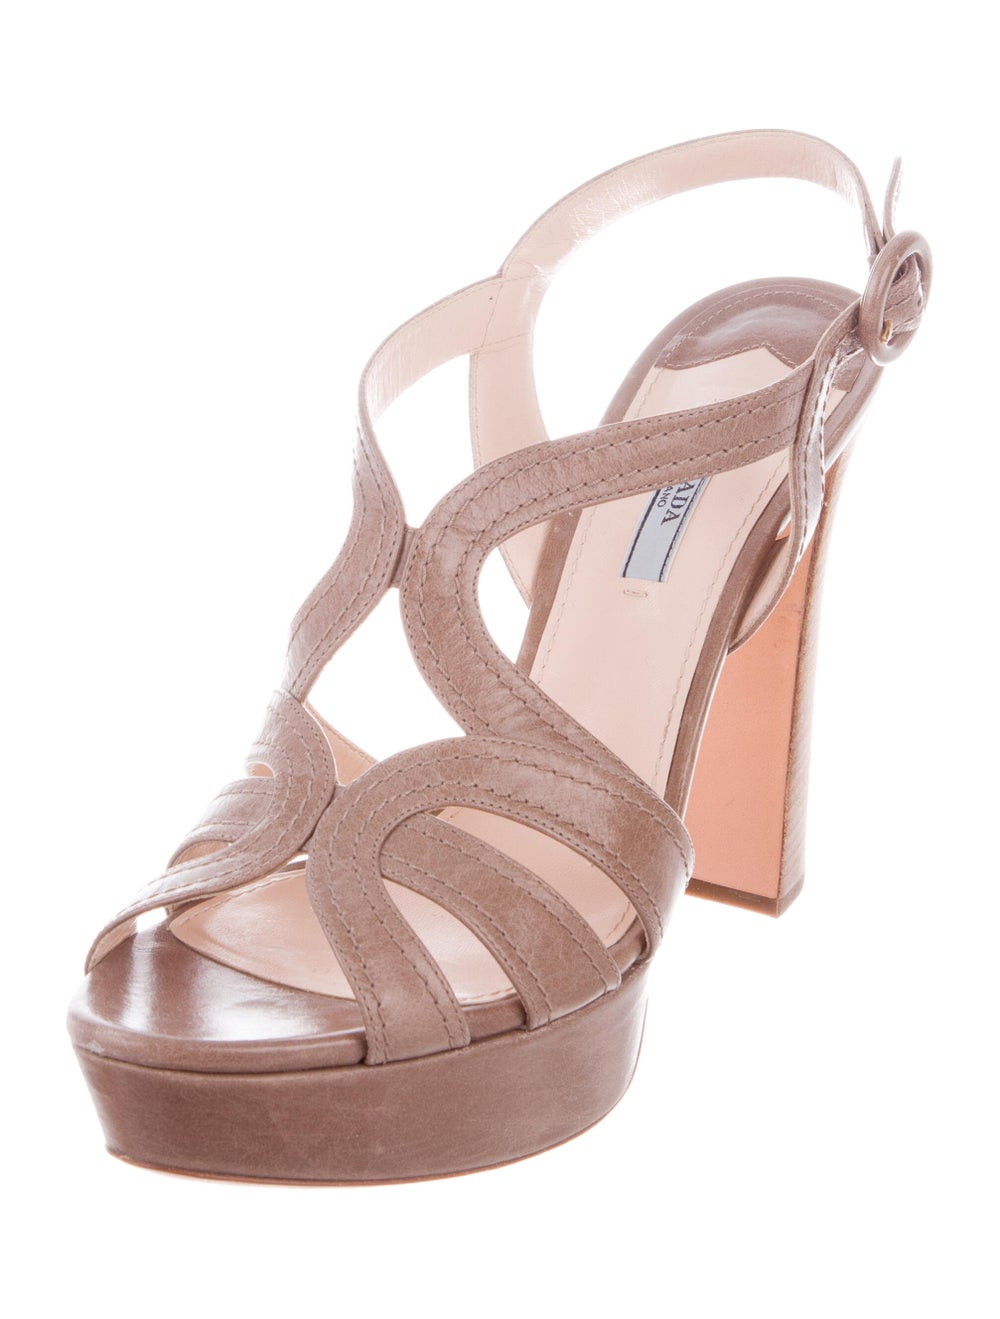 Prada Leather Platform Sandals - image 2